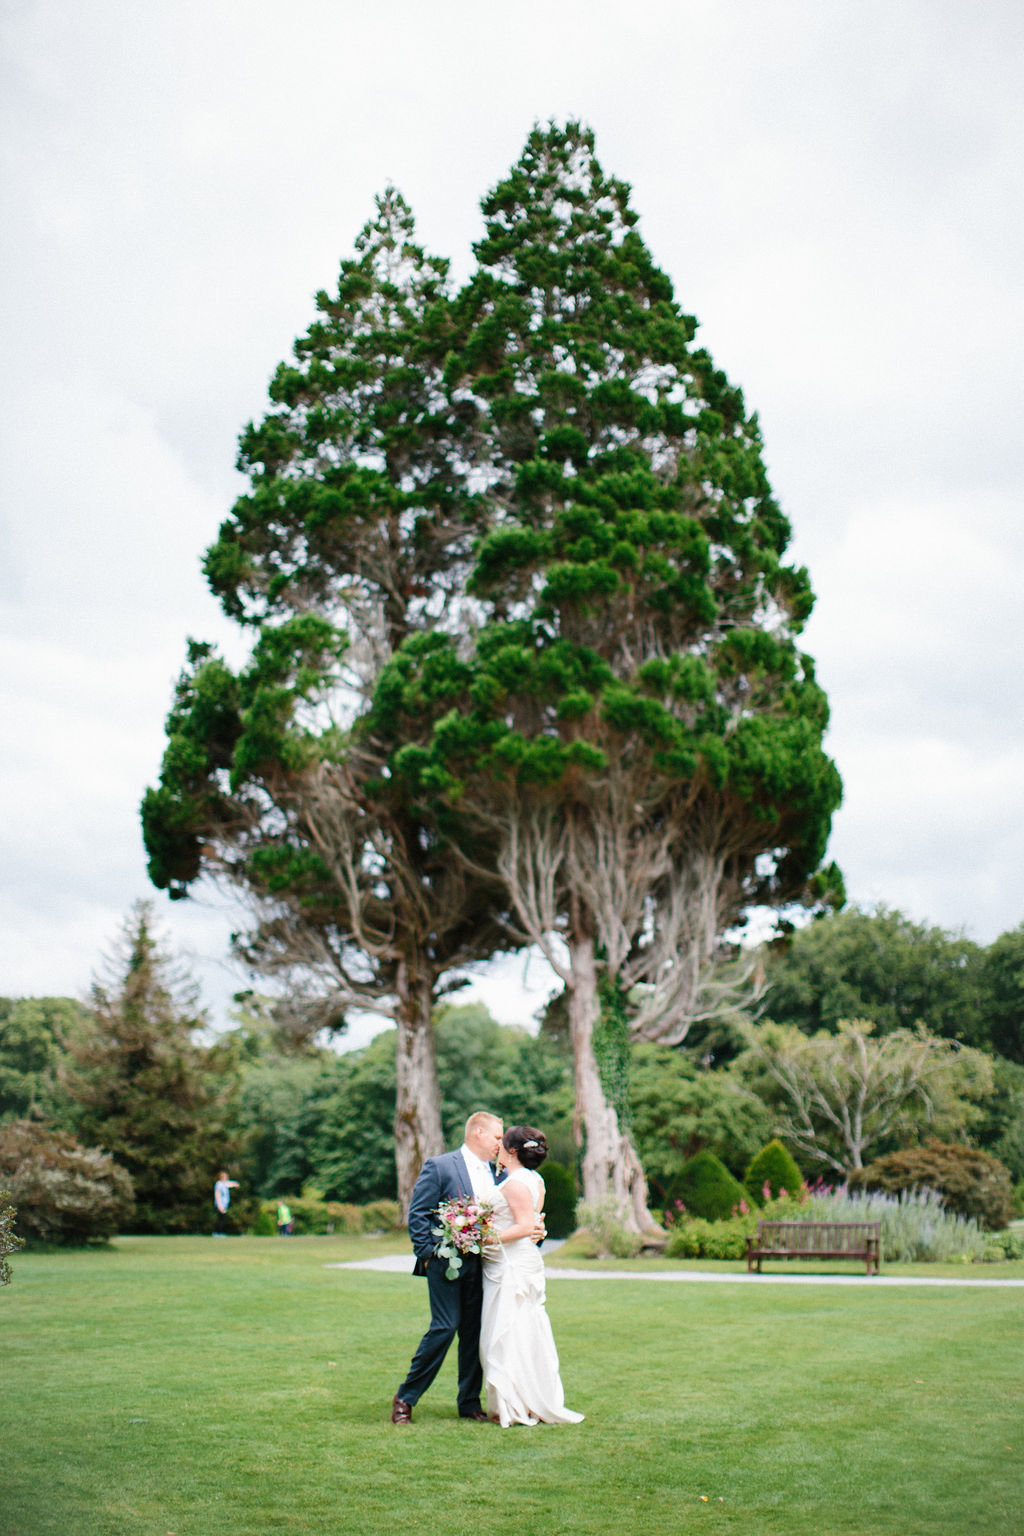 Kristina Lorraine Photography Killarney Ireland Wedding00005